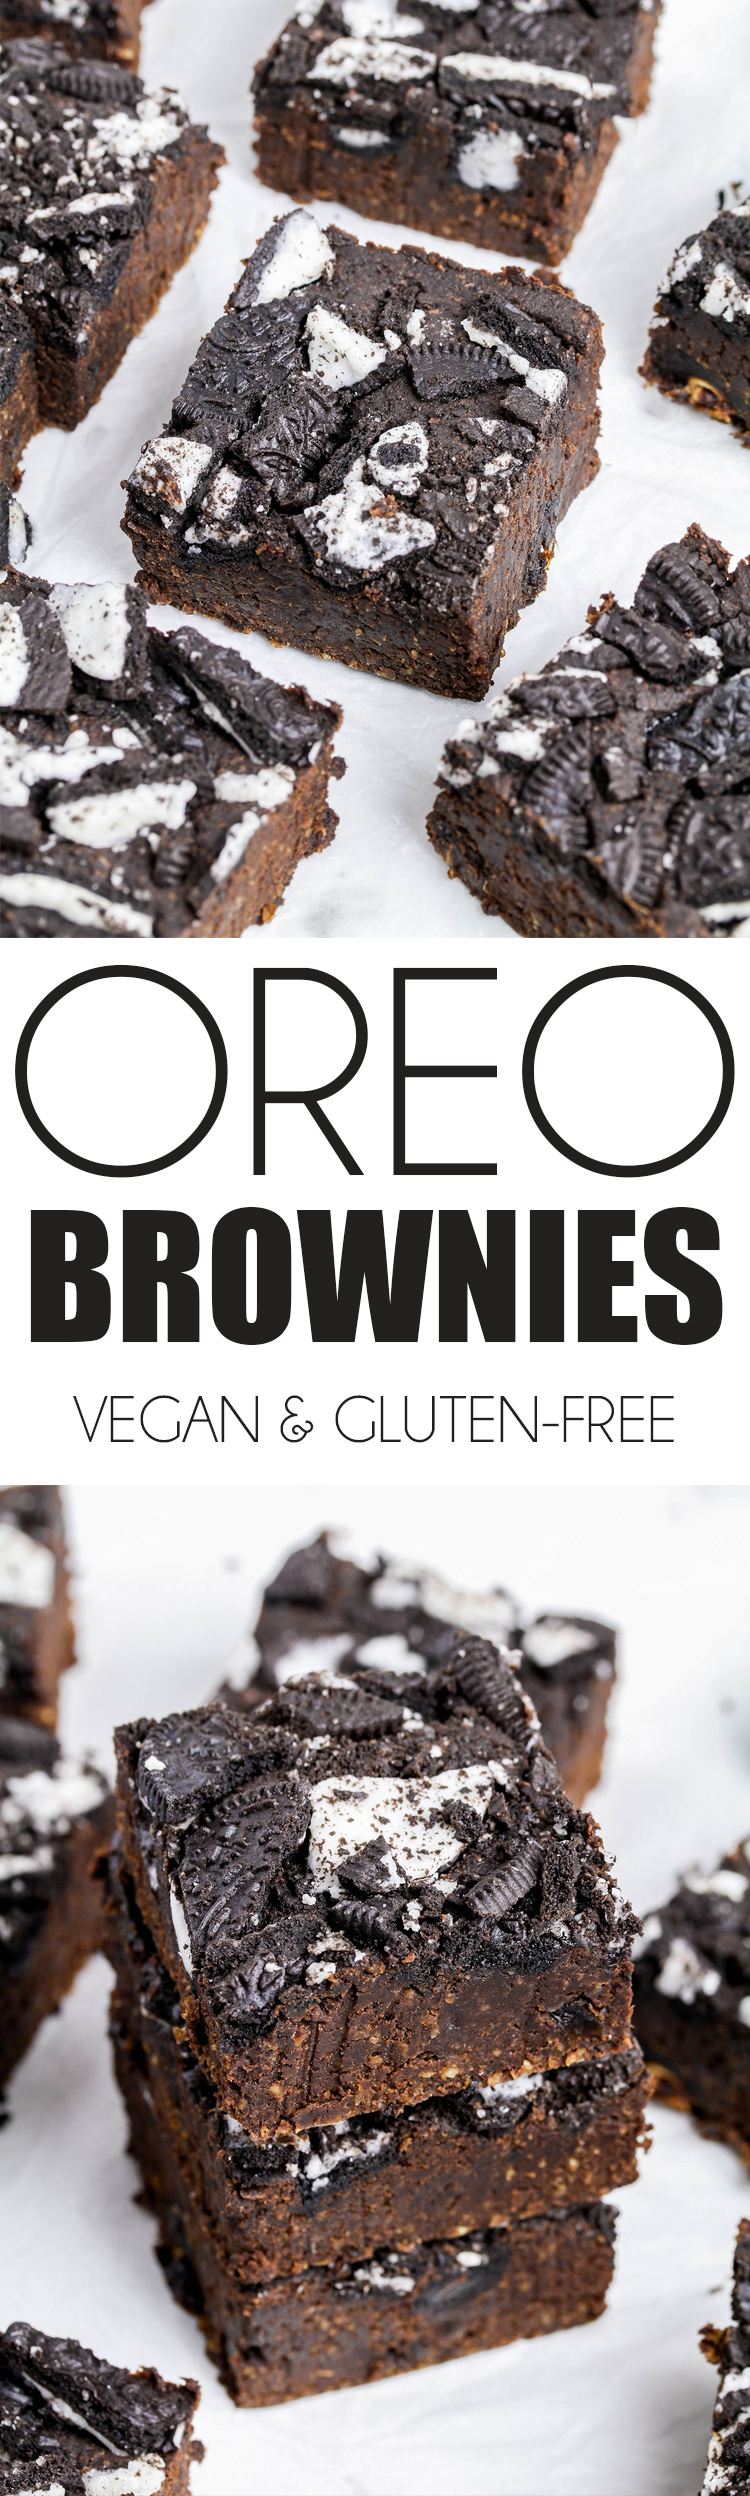 Healthified Vegan Oreo Brownies Using Go Cook Exclusively For Tesco Uk Health Blog Nadia S Healthy Kitchen